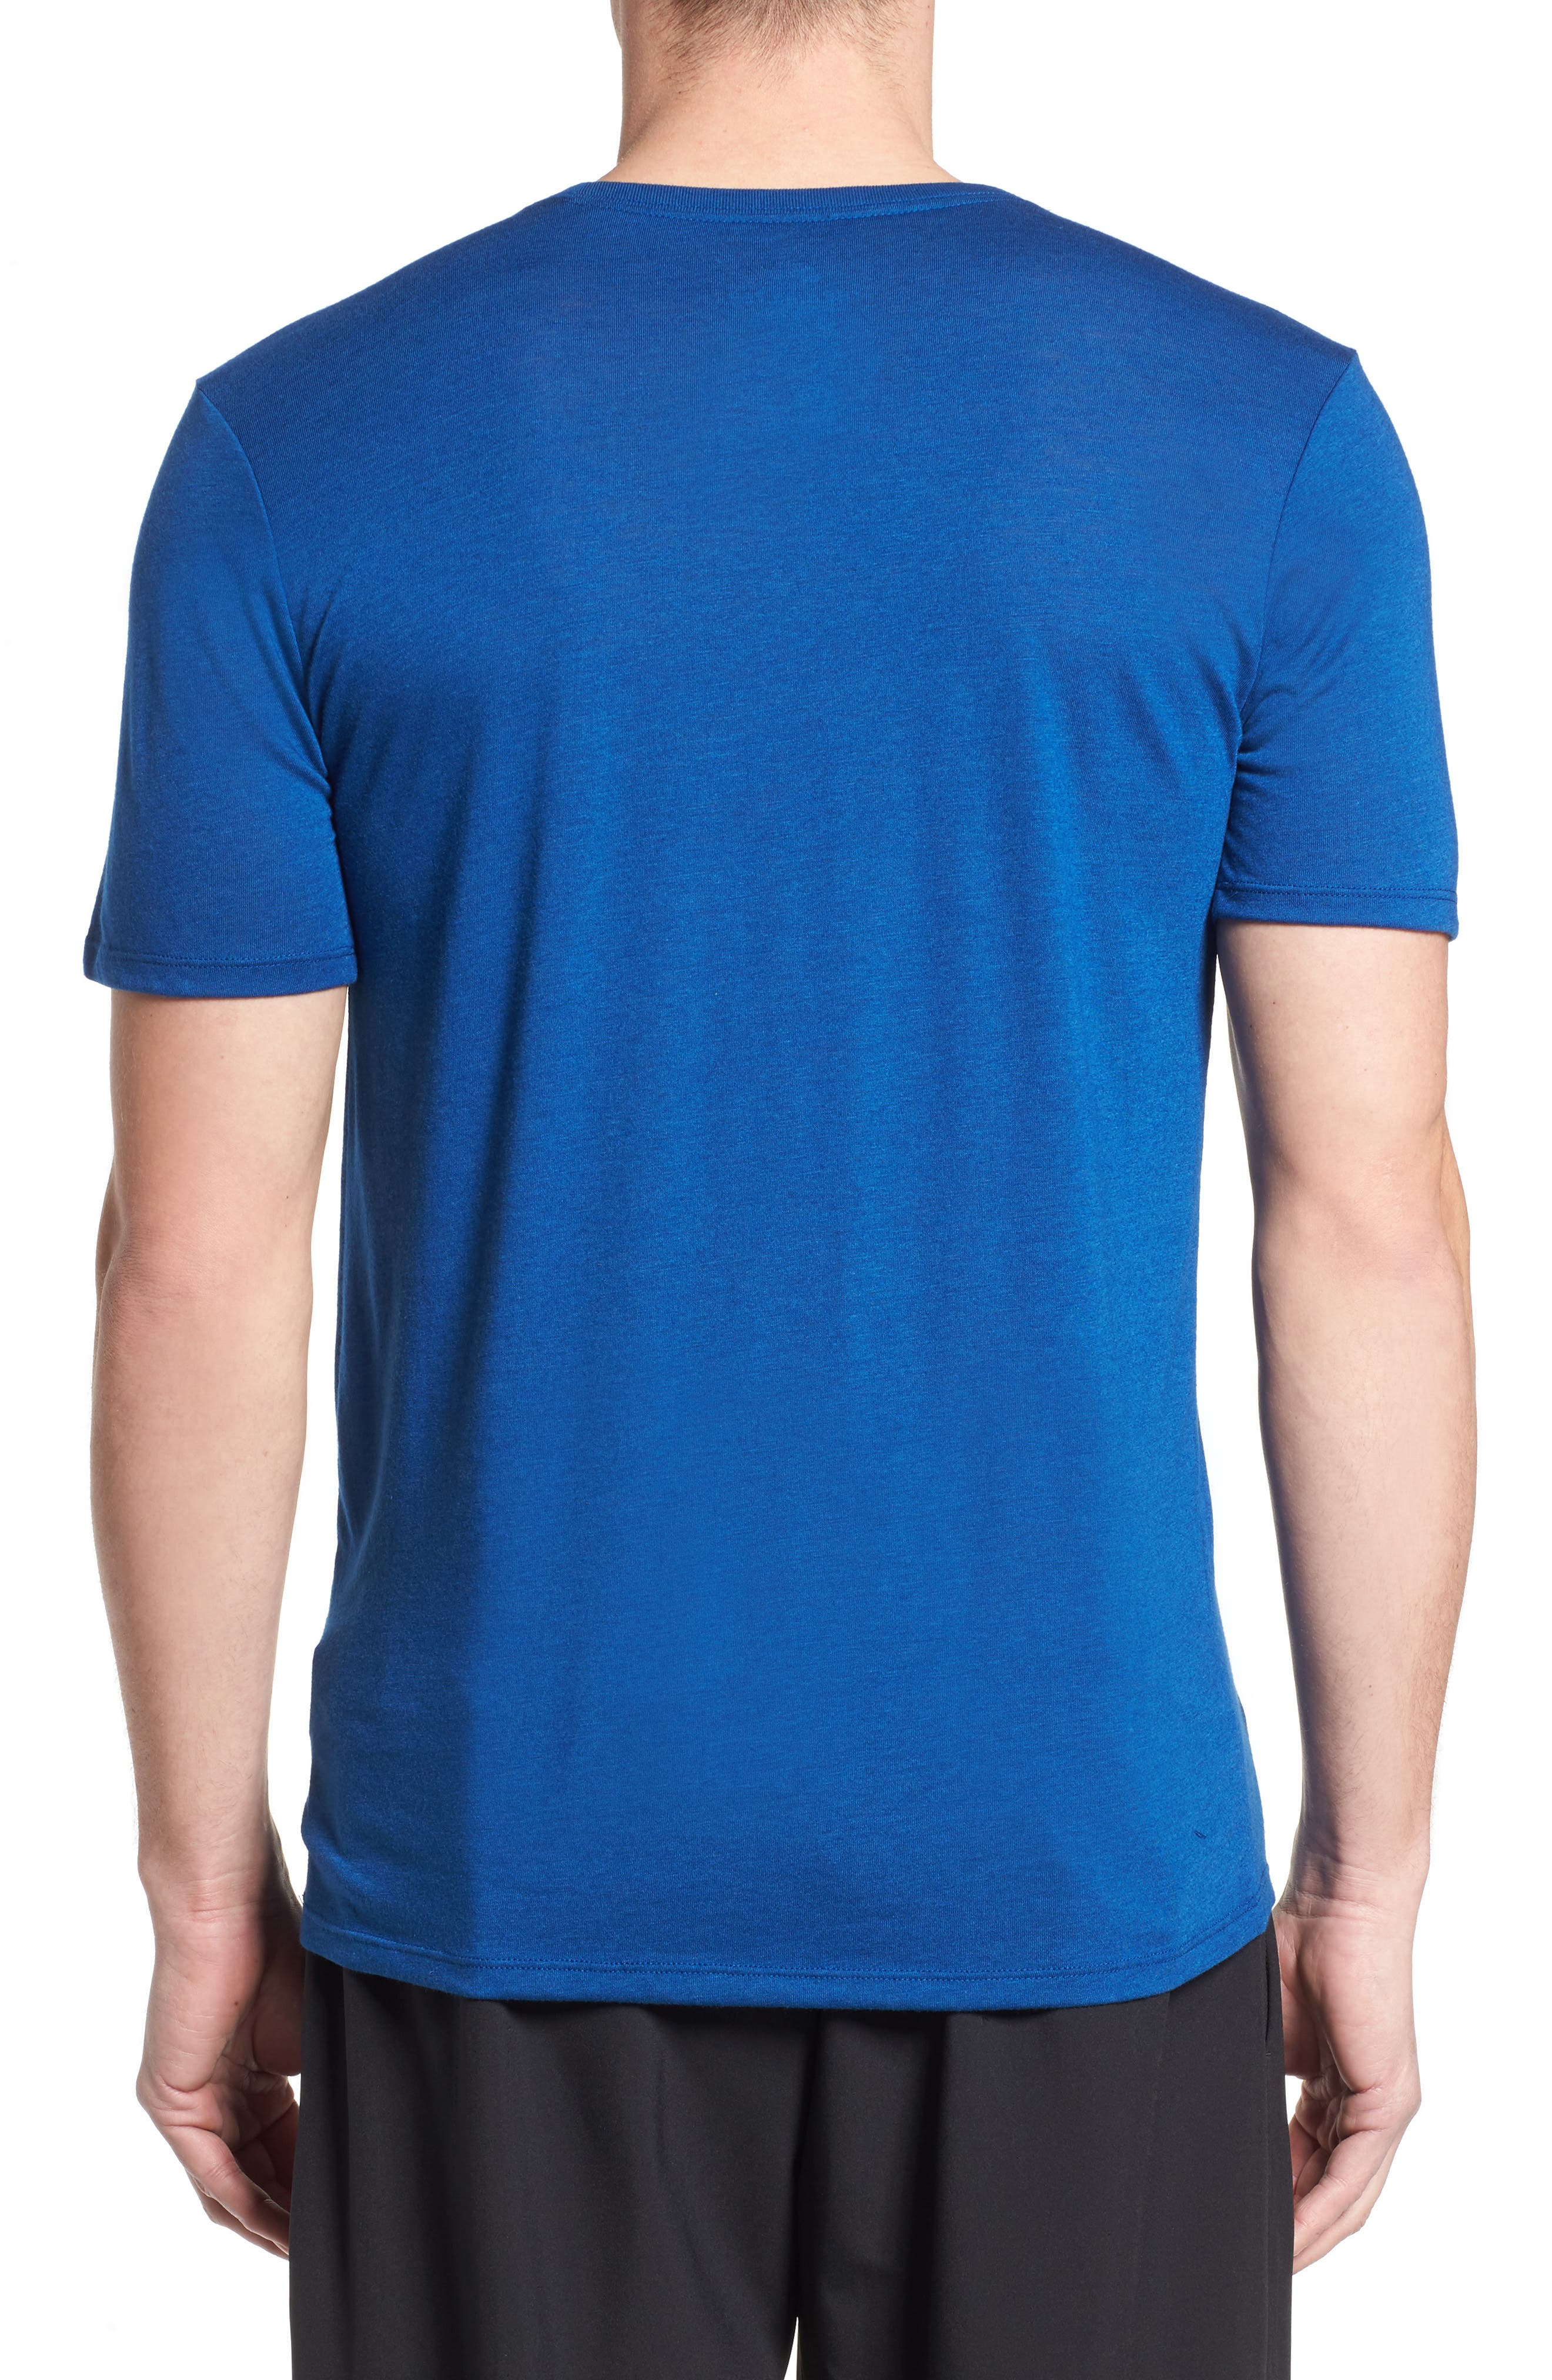 Alternate Image 2  - Nike NSW TB Tech T-Shirt